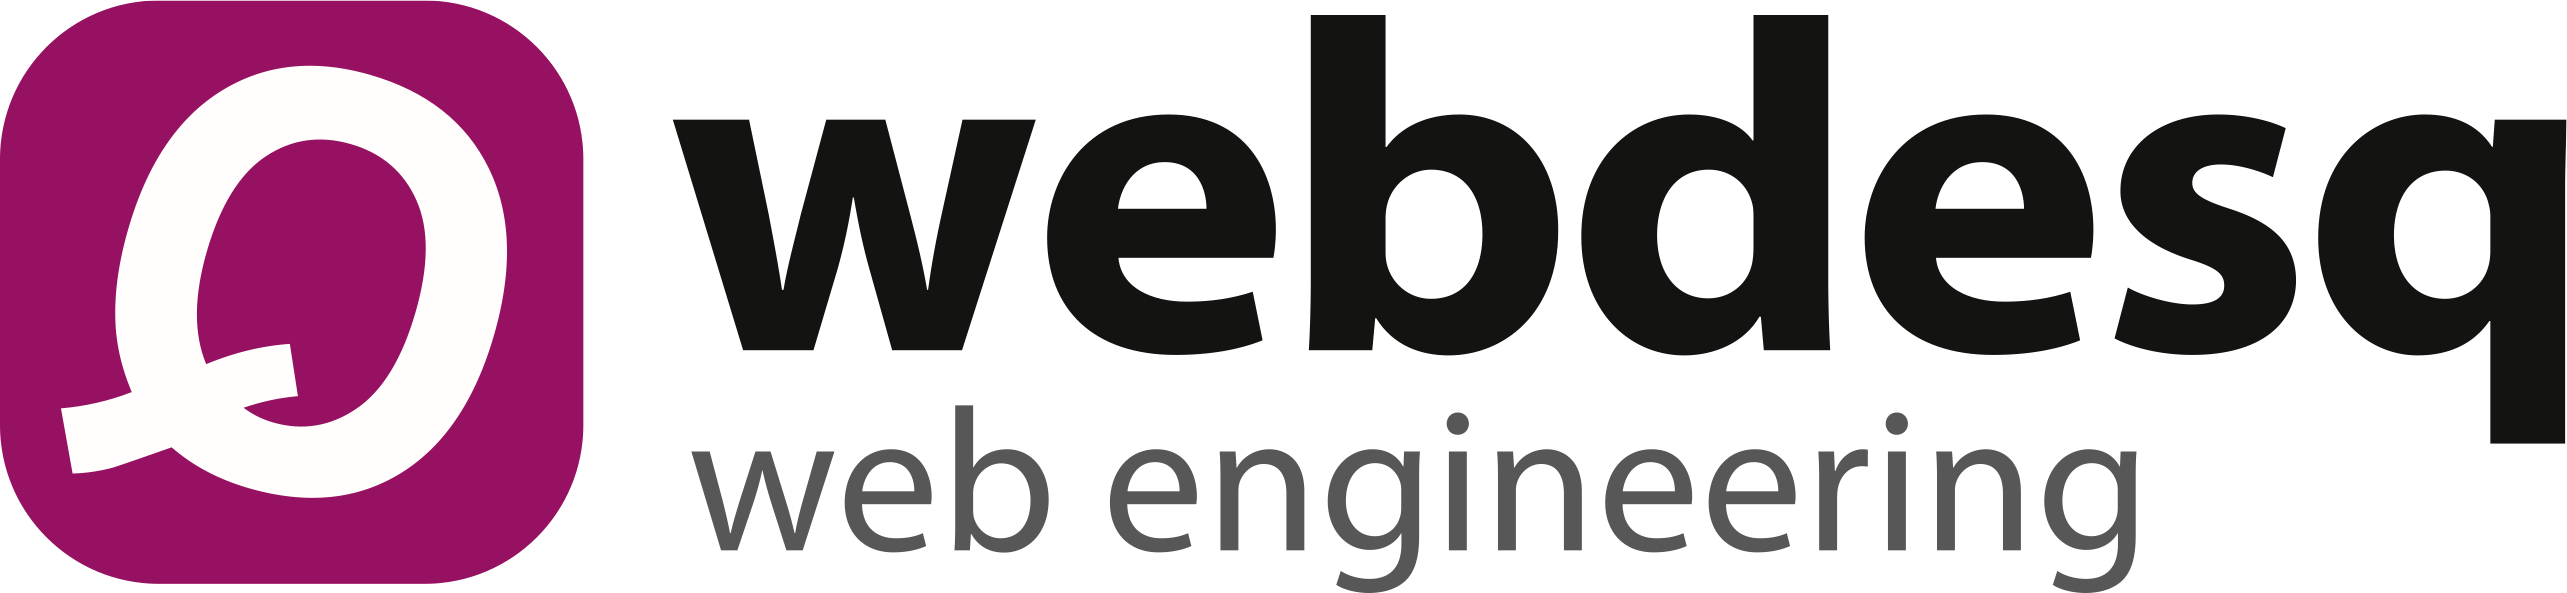 webdesq web engineering